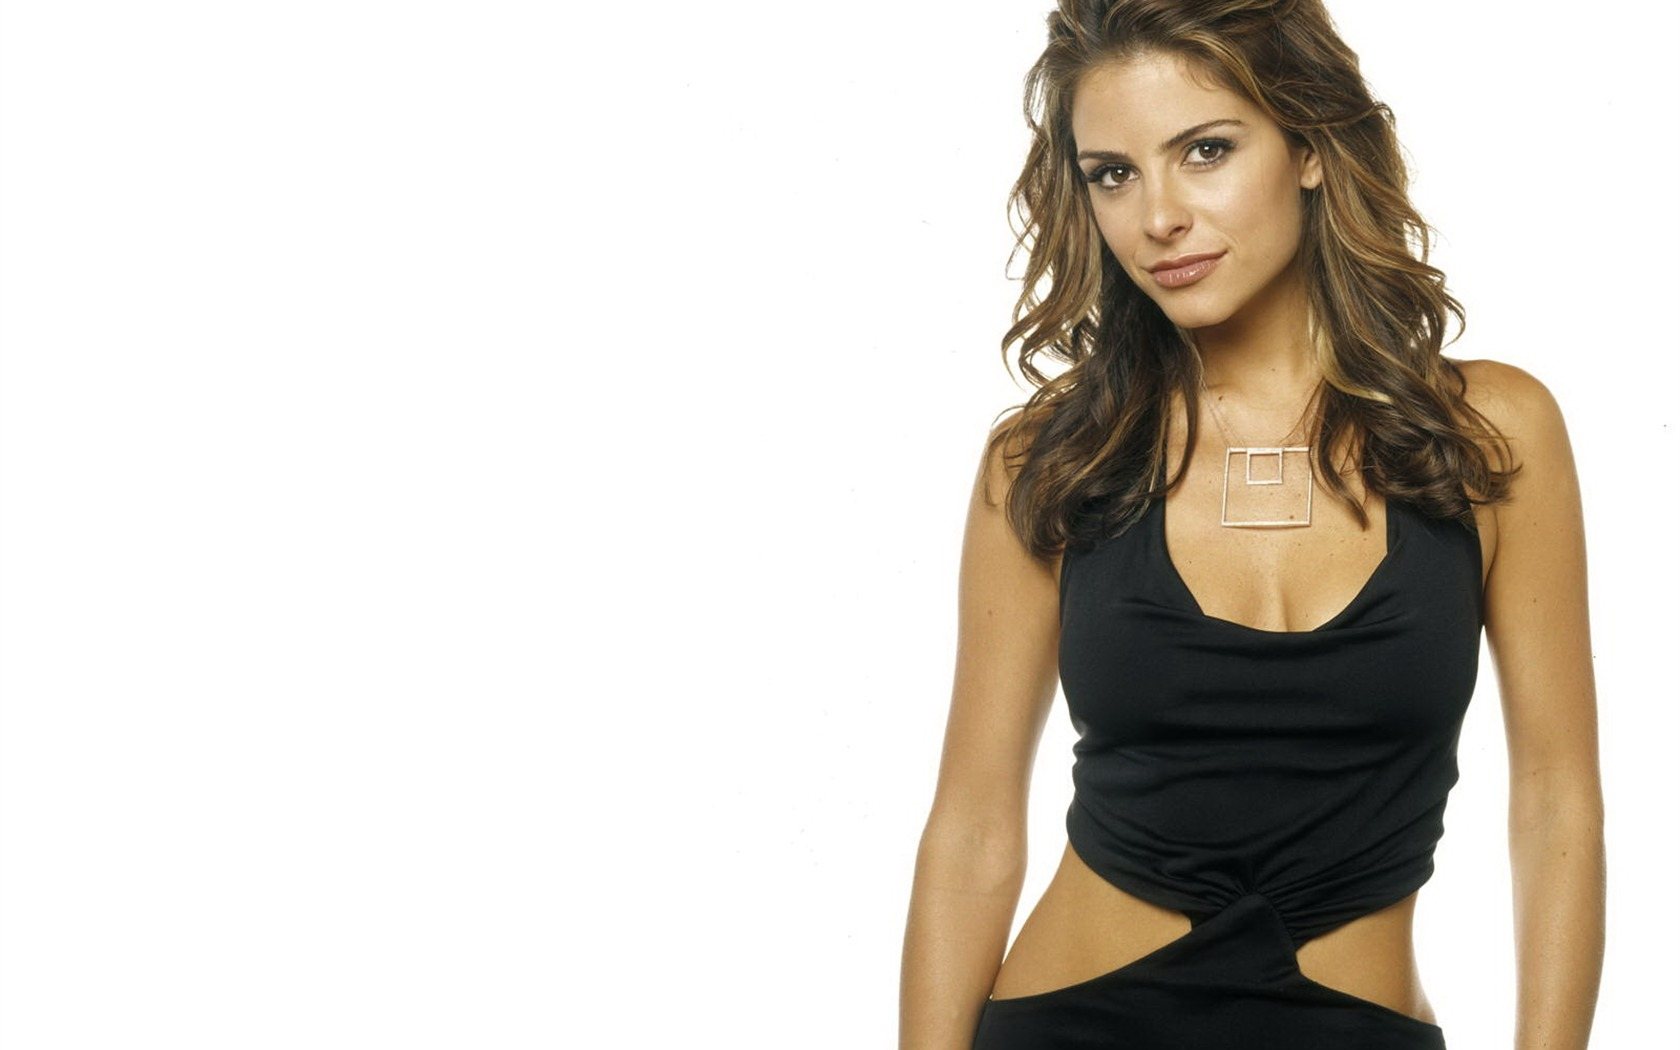 Maria Menounos #016 - 1680x1050 Wallpapers Pictures Photos Images